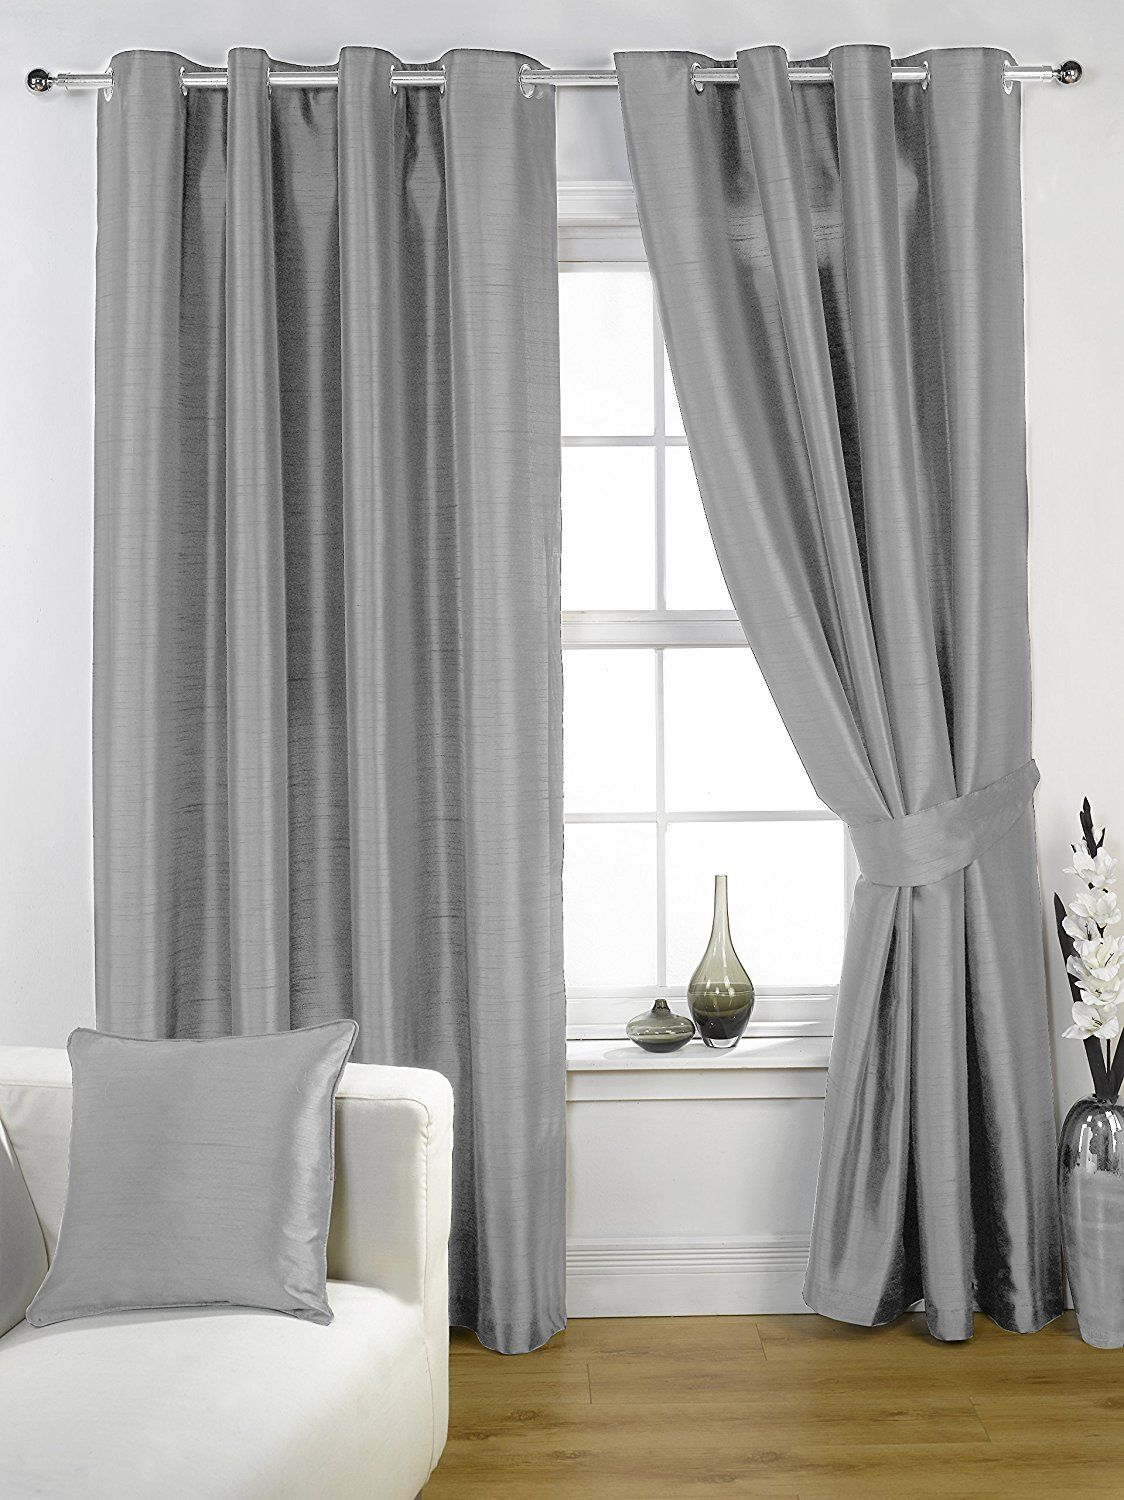 Kliving 45 X 54 Inch 100 Polyester Ravello Faux Silk Lined Eyelet